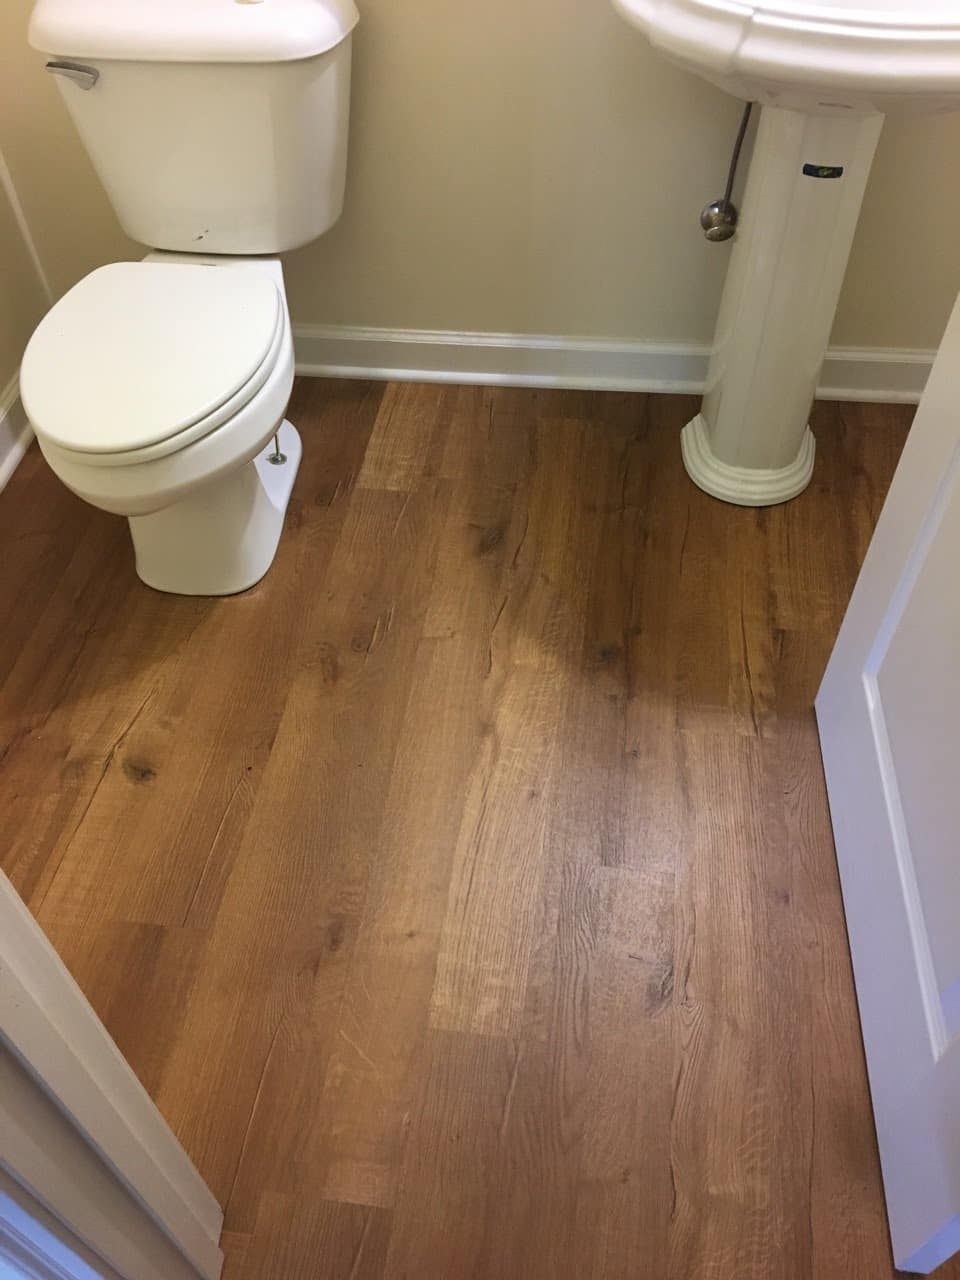 Https://fthmb.tqn.com/zXwuJ7jtu_BFE9OWCQvZK7mzxWcu003d/960x0/filters:no_upscale()/Small  Bathroom Flooring Ideas   Luxukry Vinyl Plank 56a49c743df78cf772833eb6.